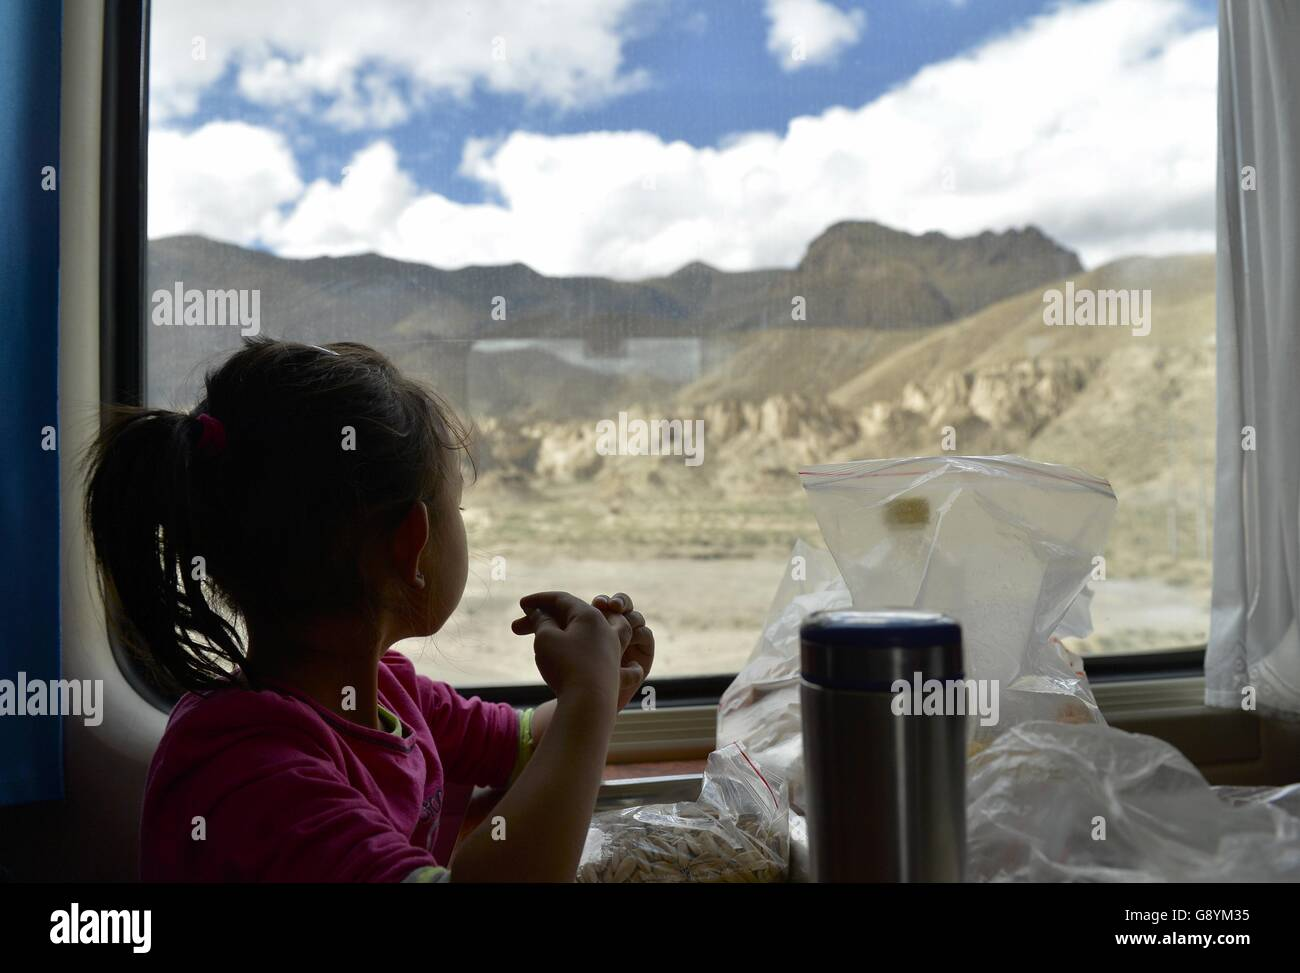 (160630) -- BEIJING, June 30, 2016 (Xinhua) -- File photo taken on Aug. 1, 2015 shows a five-year-old girl viewing - Stock Image